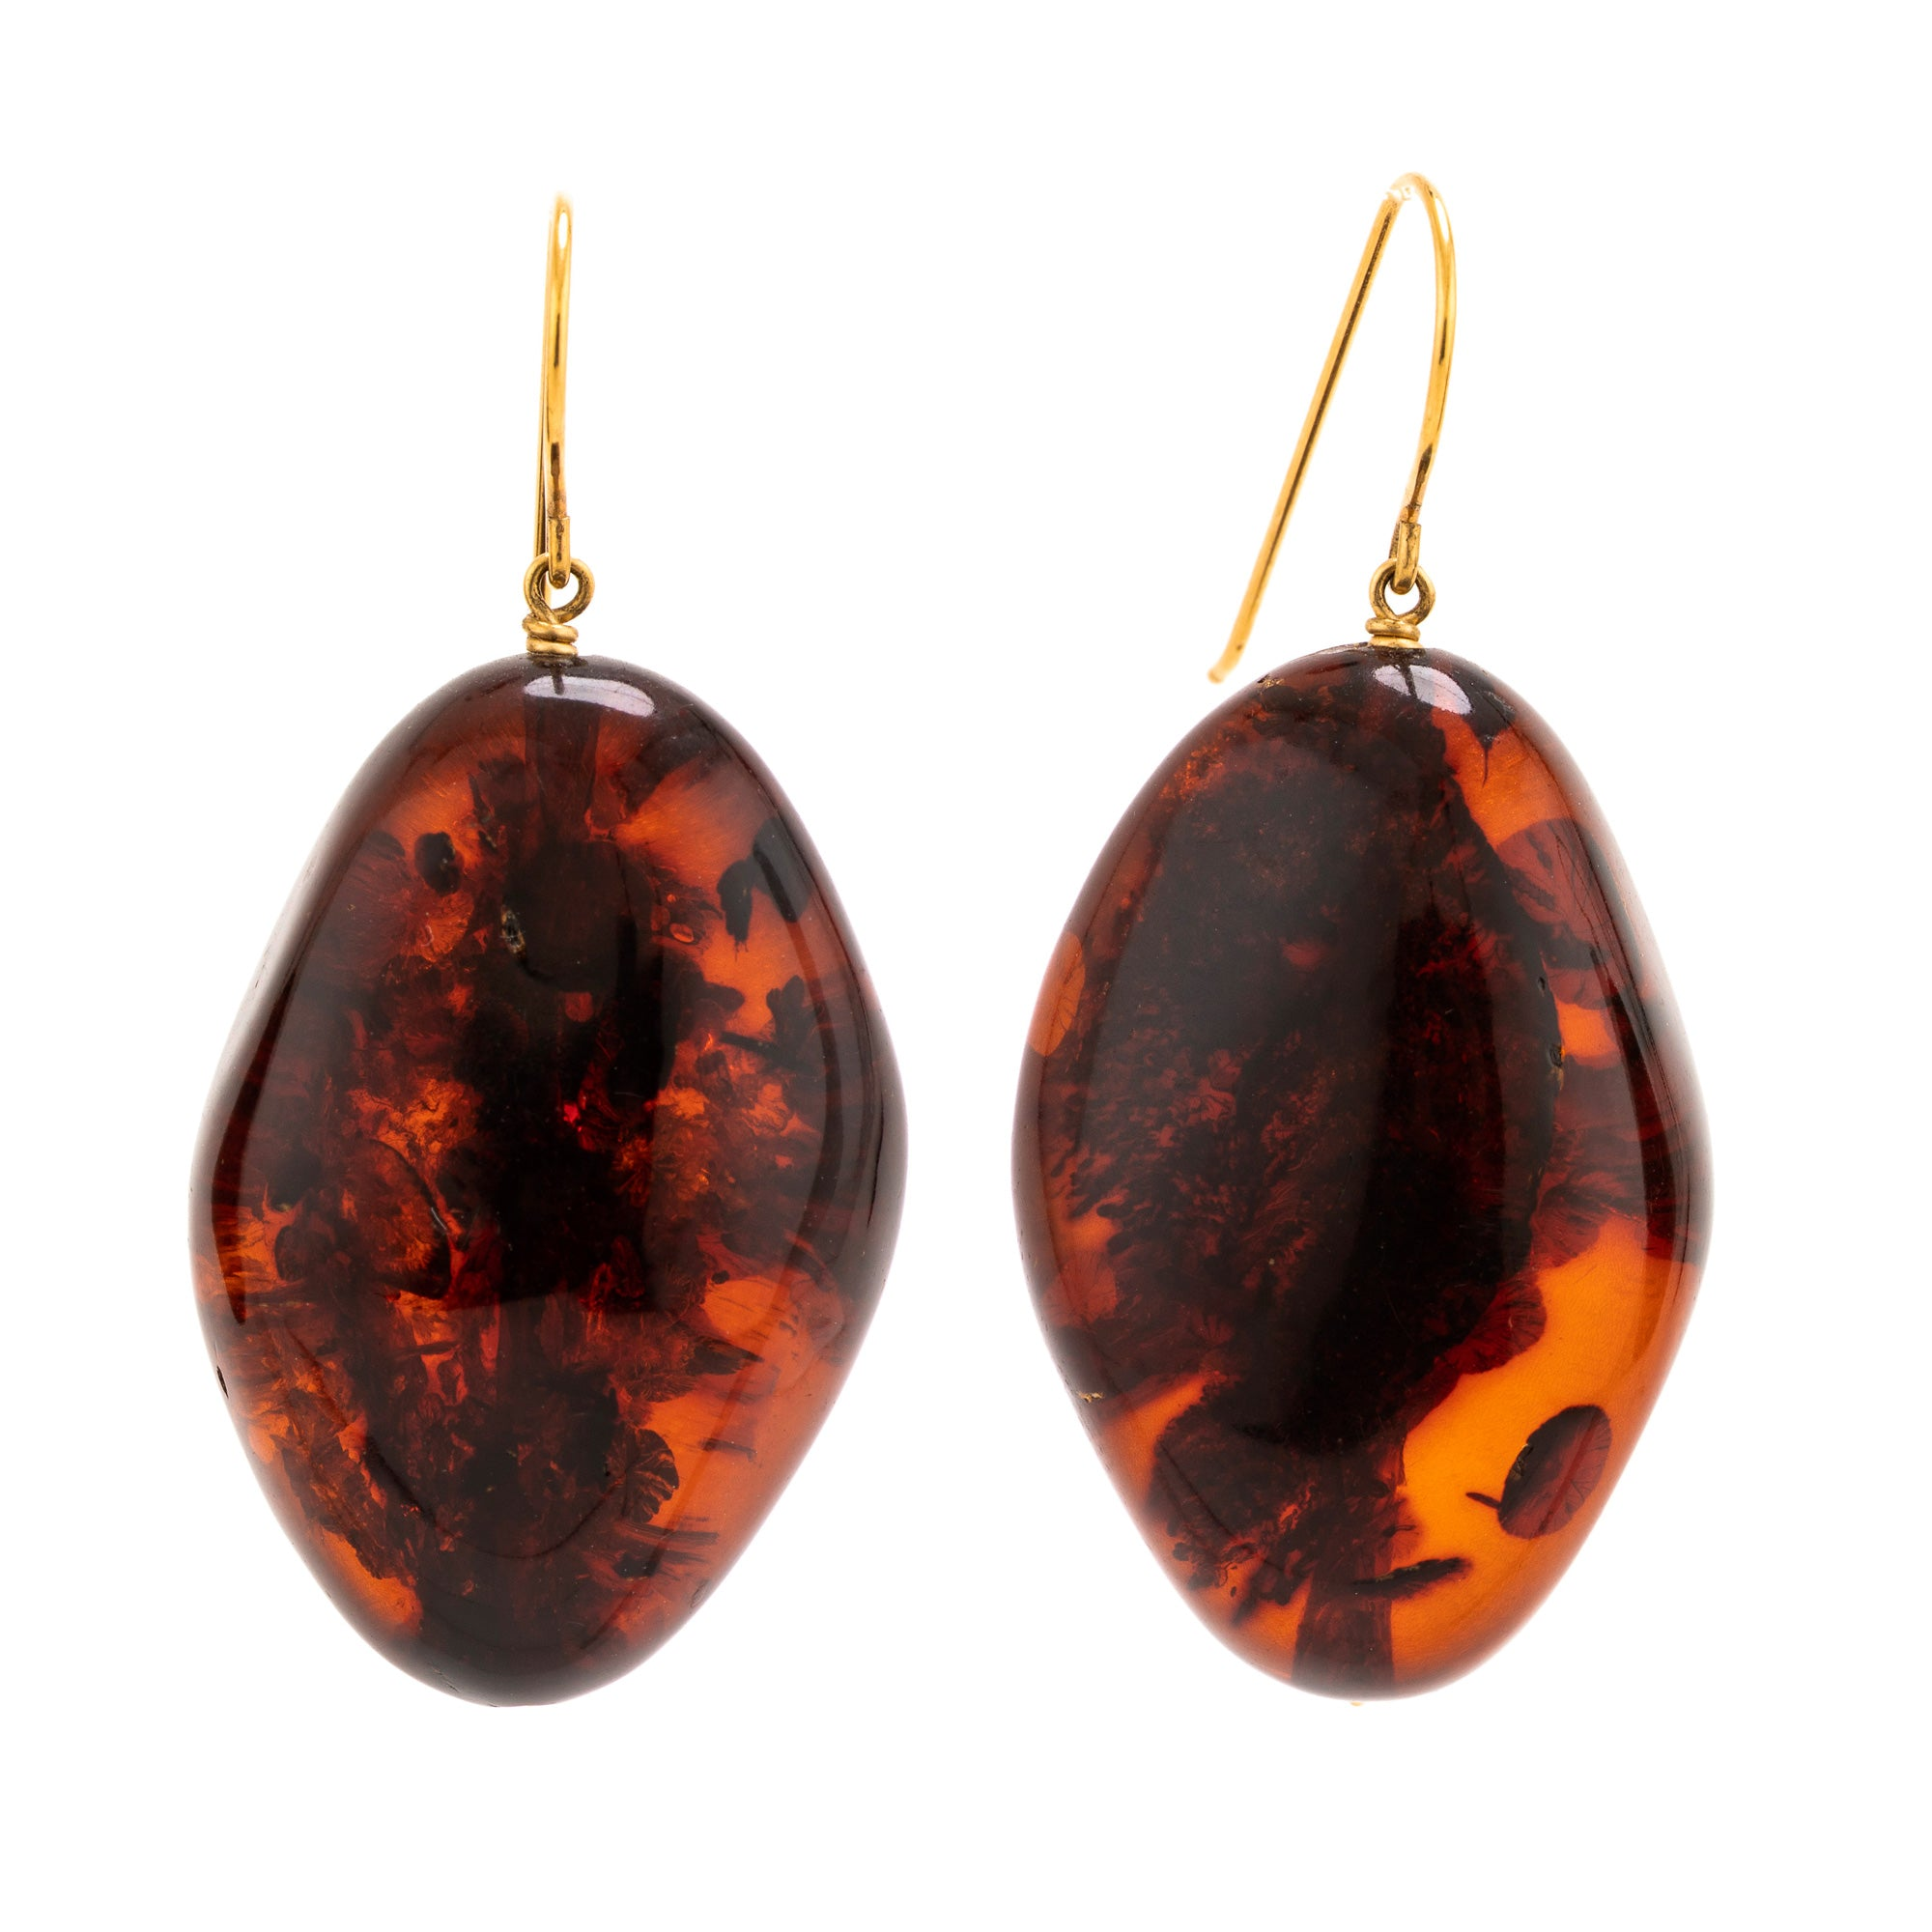 BALTIC I amber earrings